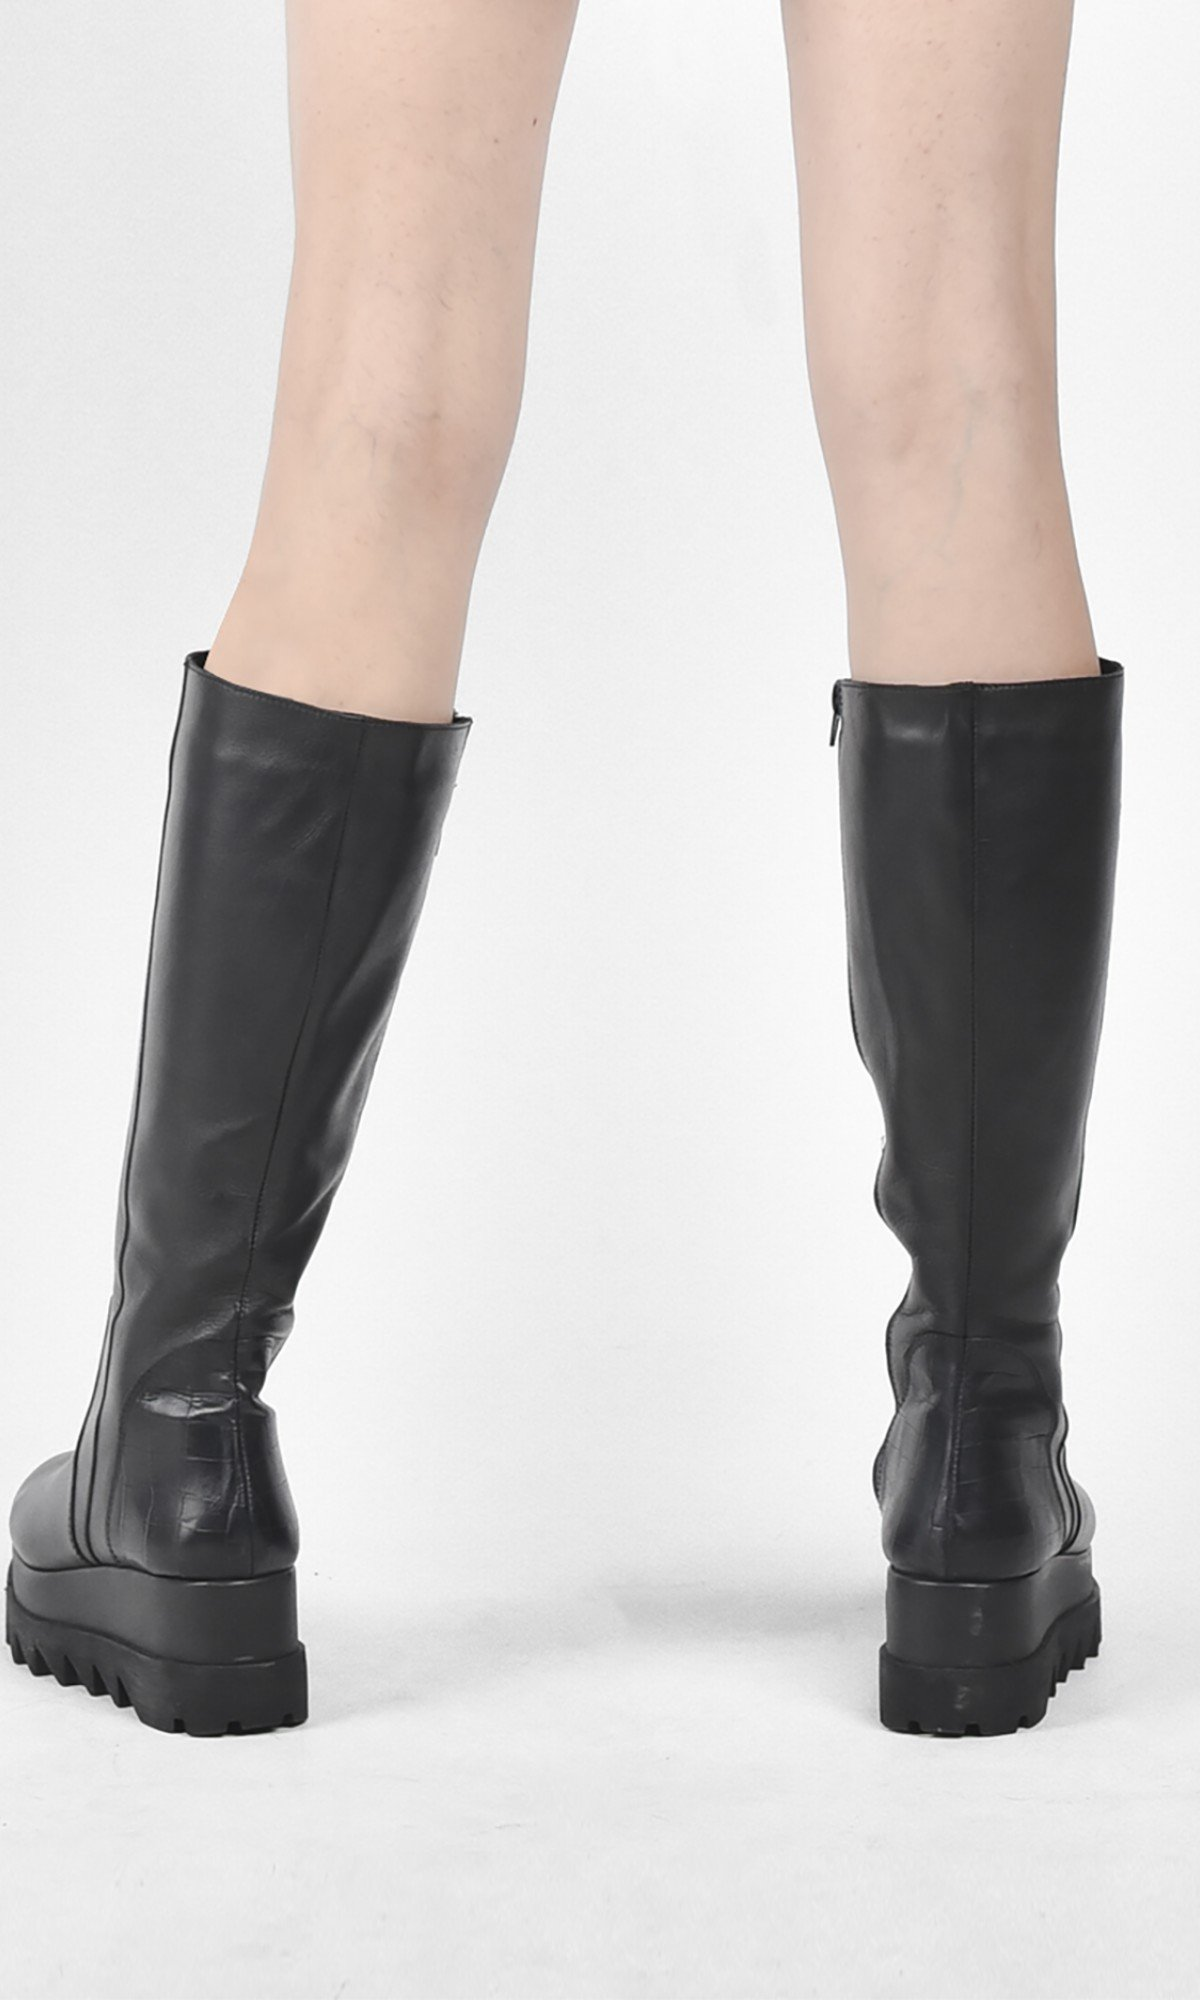 Genuine Leather High Platform Boots A21695